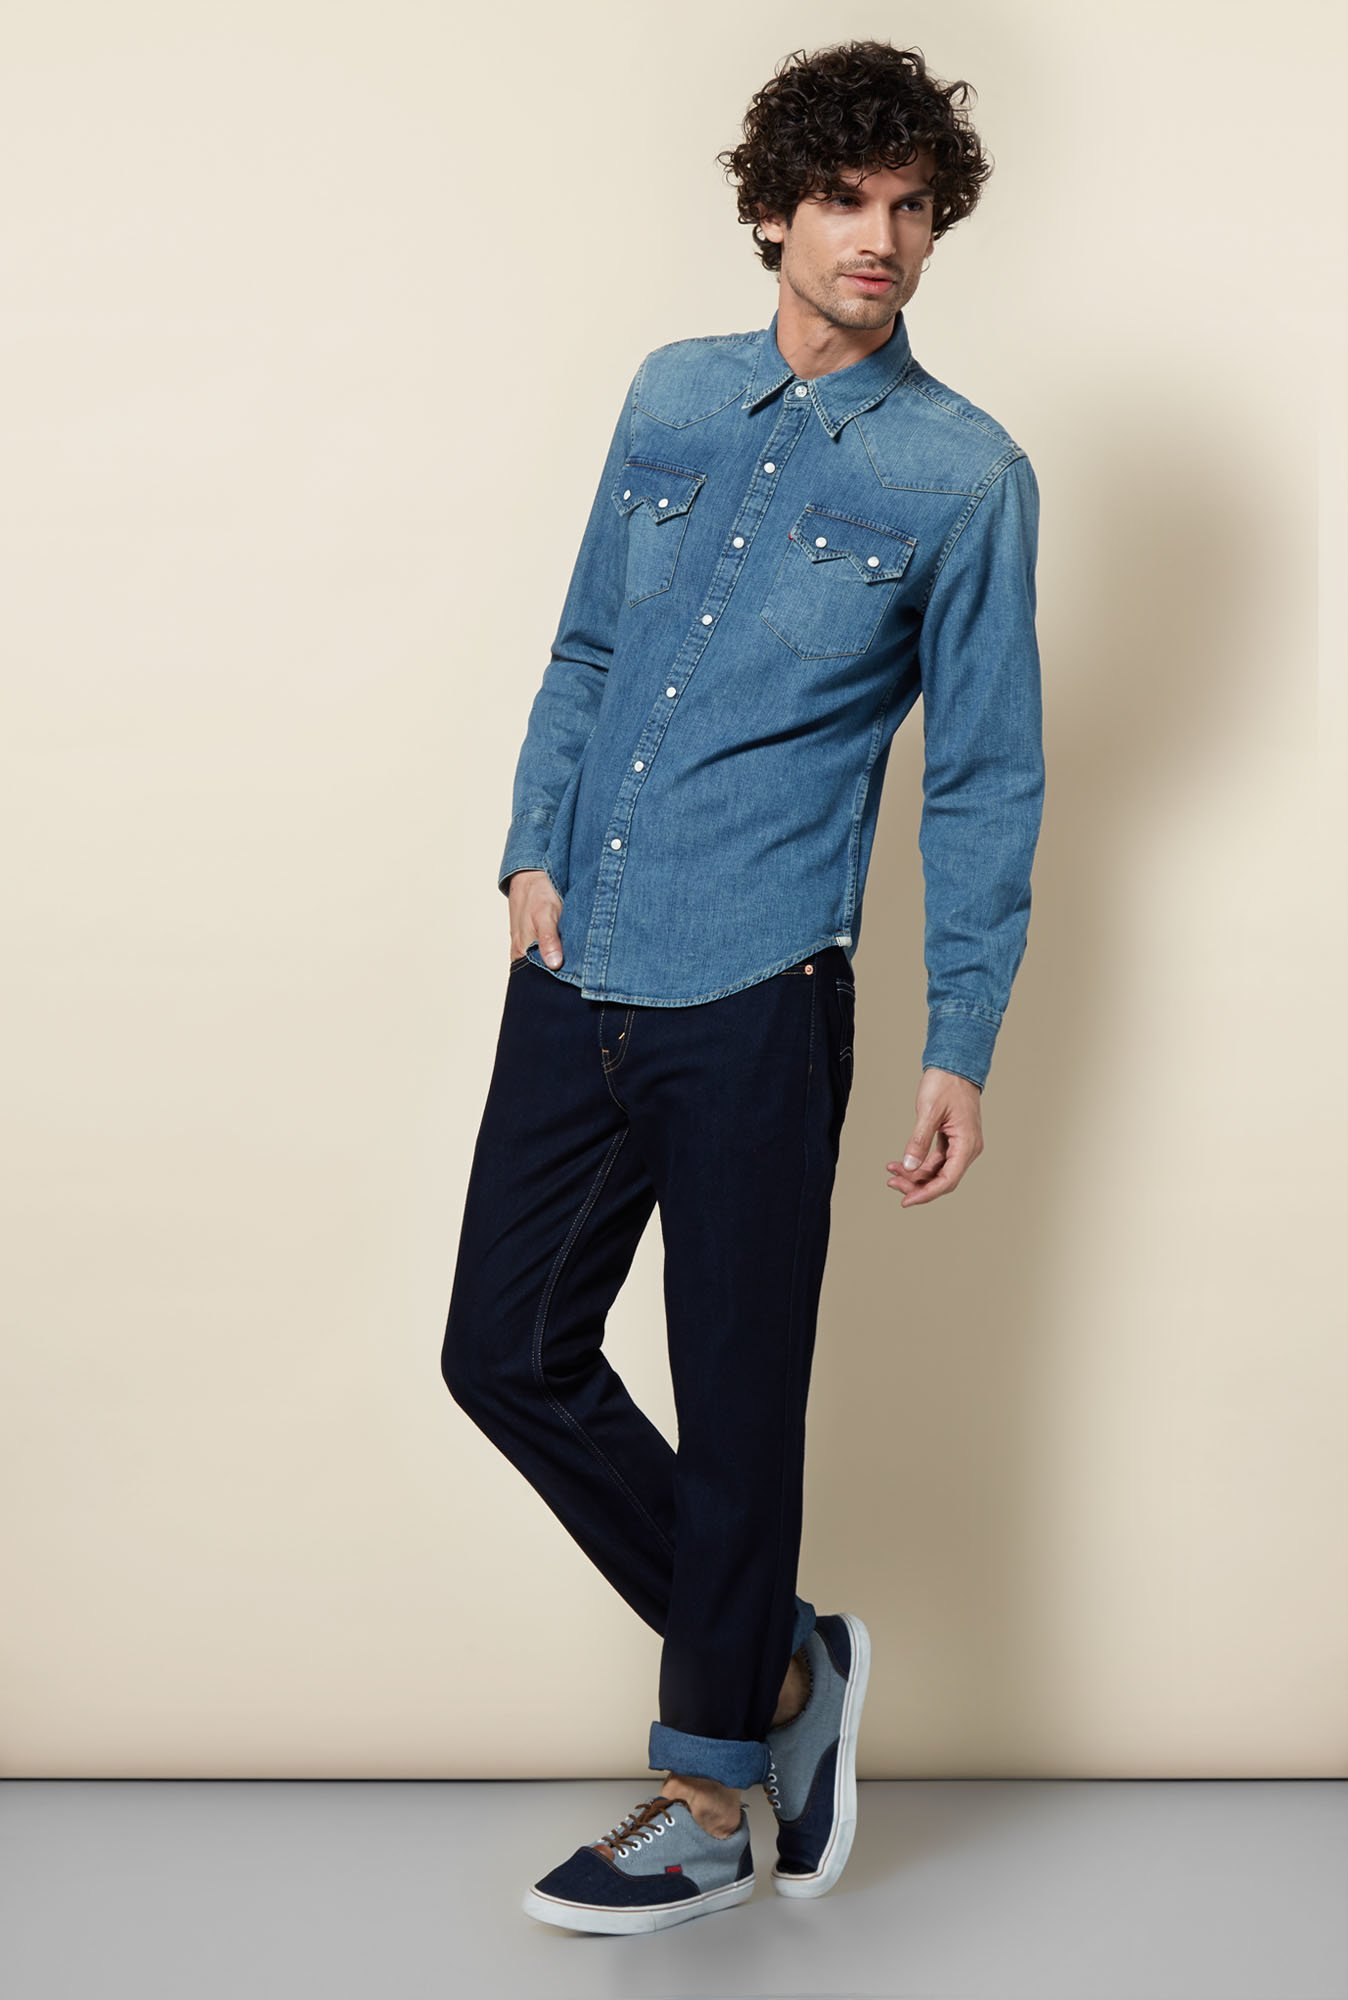 Levi's Blue Chambray Shirt